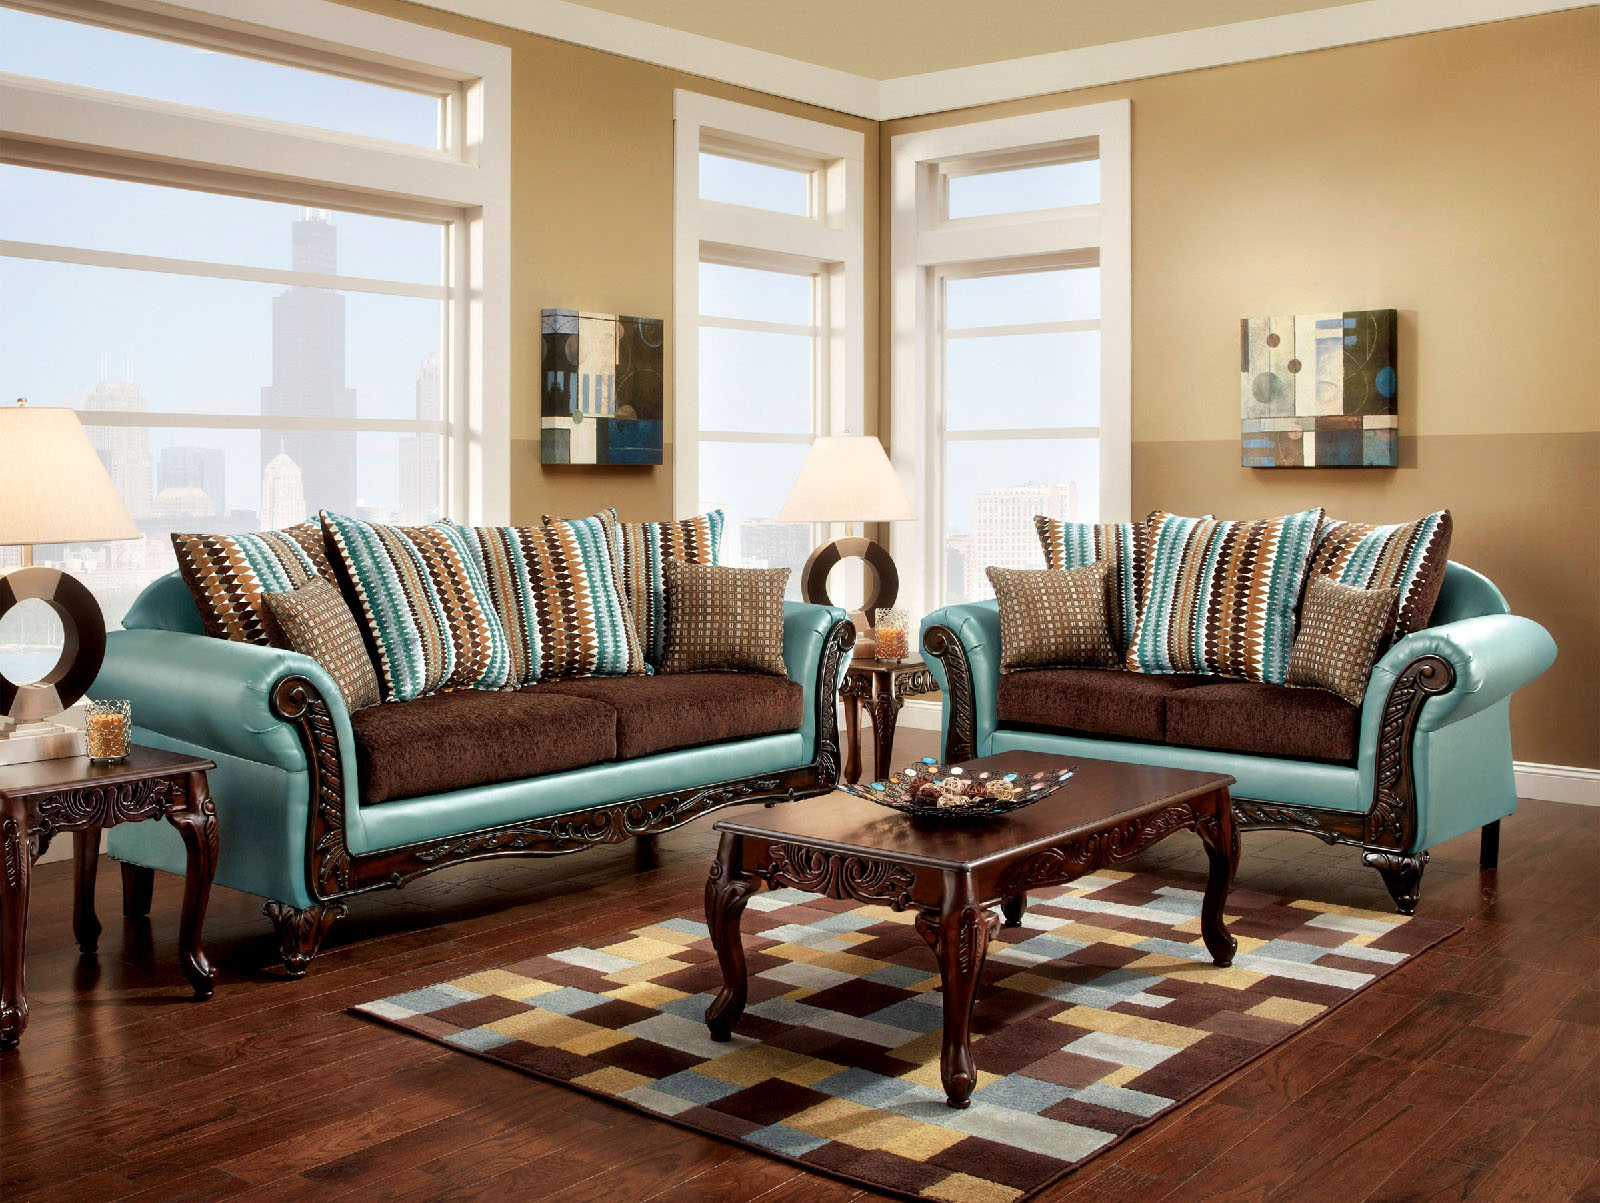 Picture of: Foa Furniture Of America Mulligan 2pc Sofa Loveseat Set Dallas Tx Living Room Set Furniture Nation